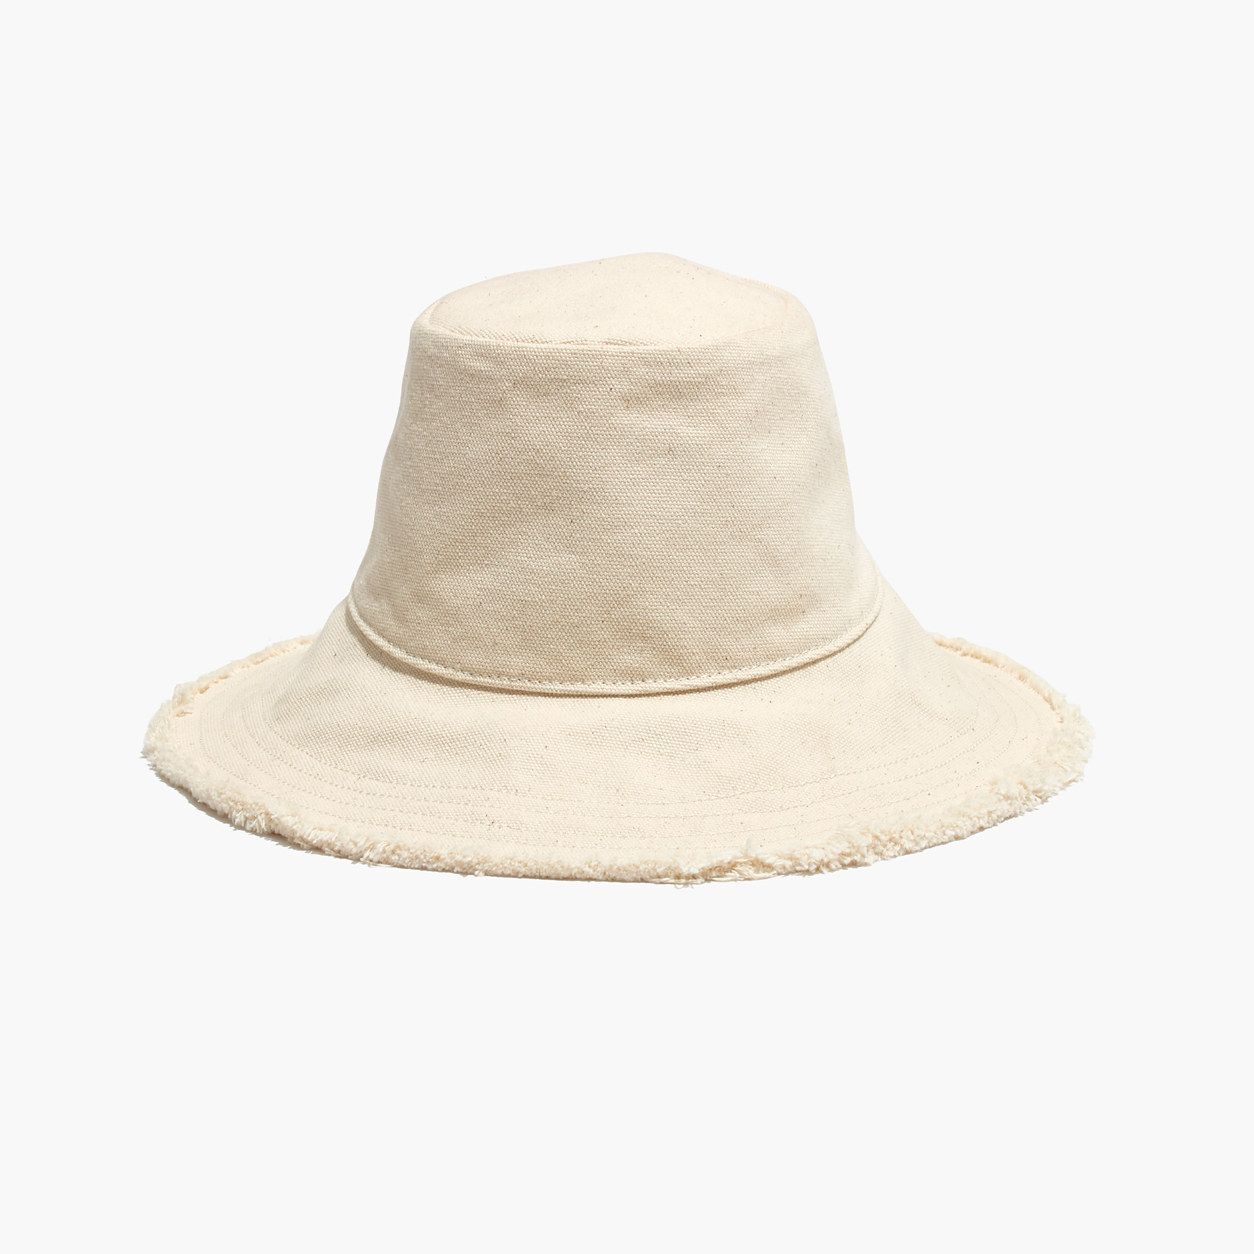 676620b93 Madewell Canvas Bucket Hat (Size S-M, Natural) | Products | Canvas ...